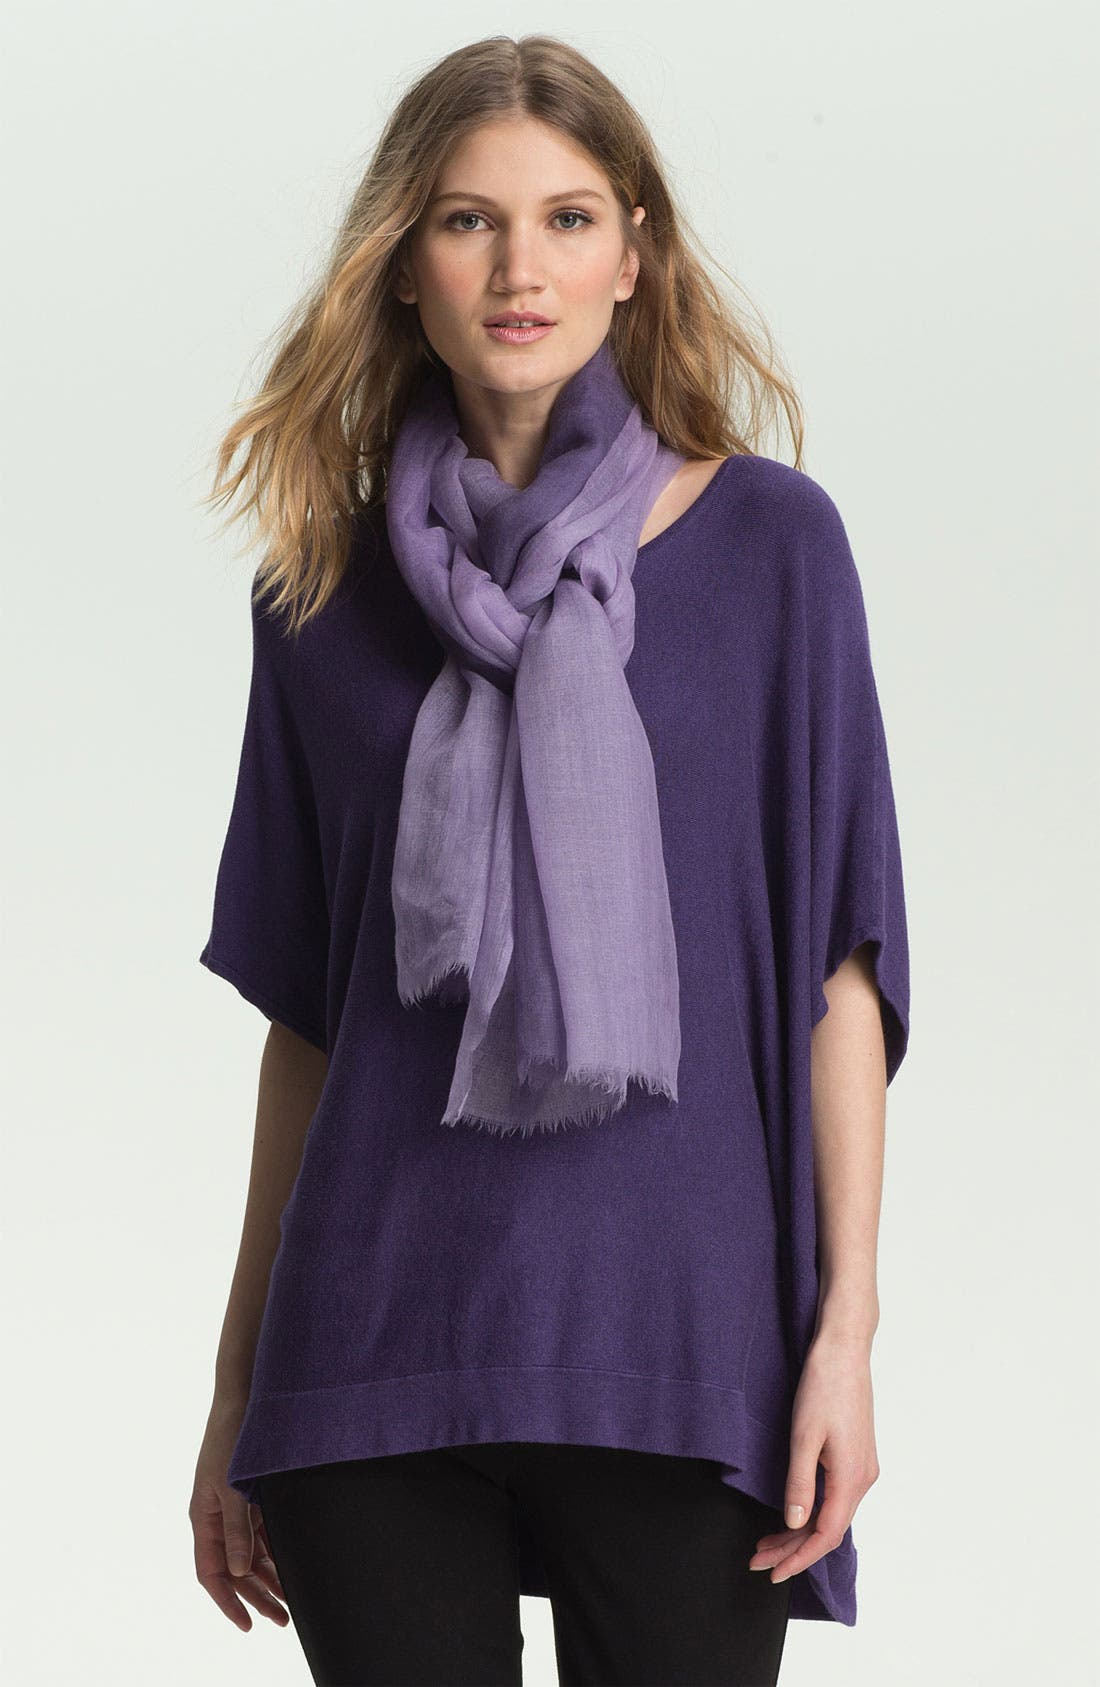 Alternate Image 1 Selected - Eileen Fisher Bateau Neck Boxy Knit Top (Online Exclusive)